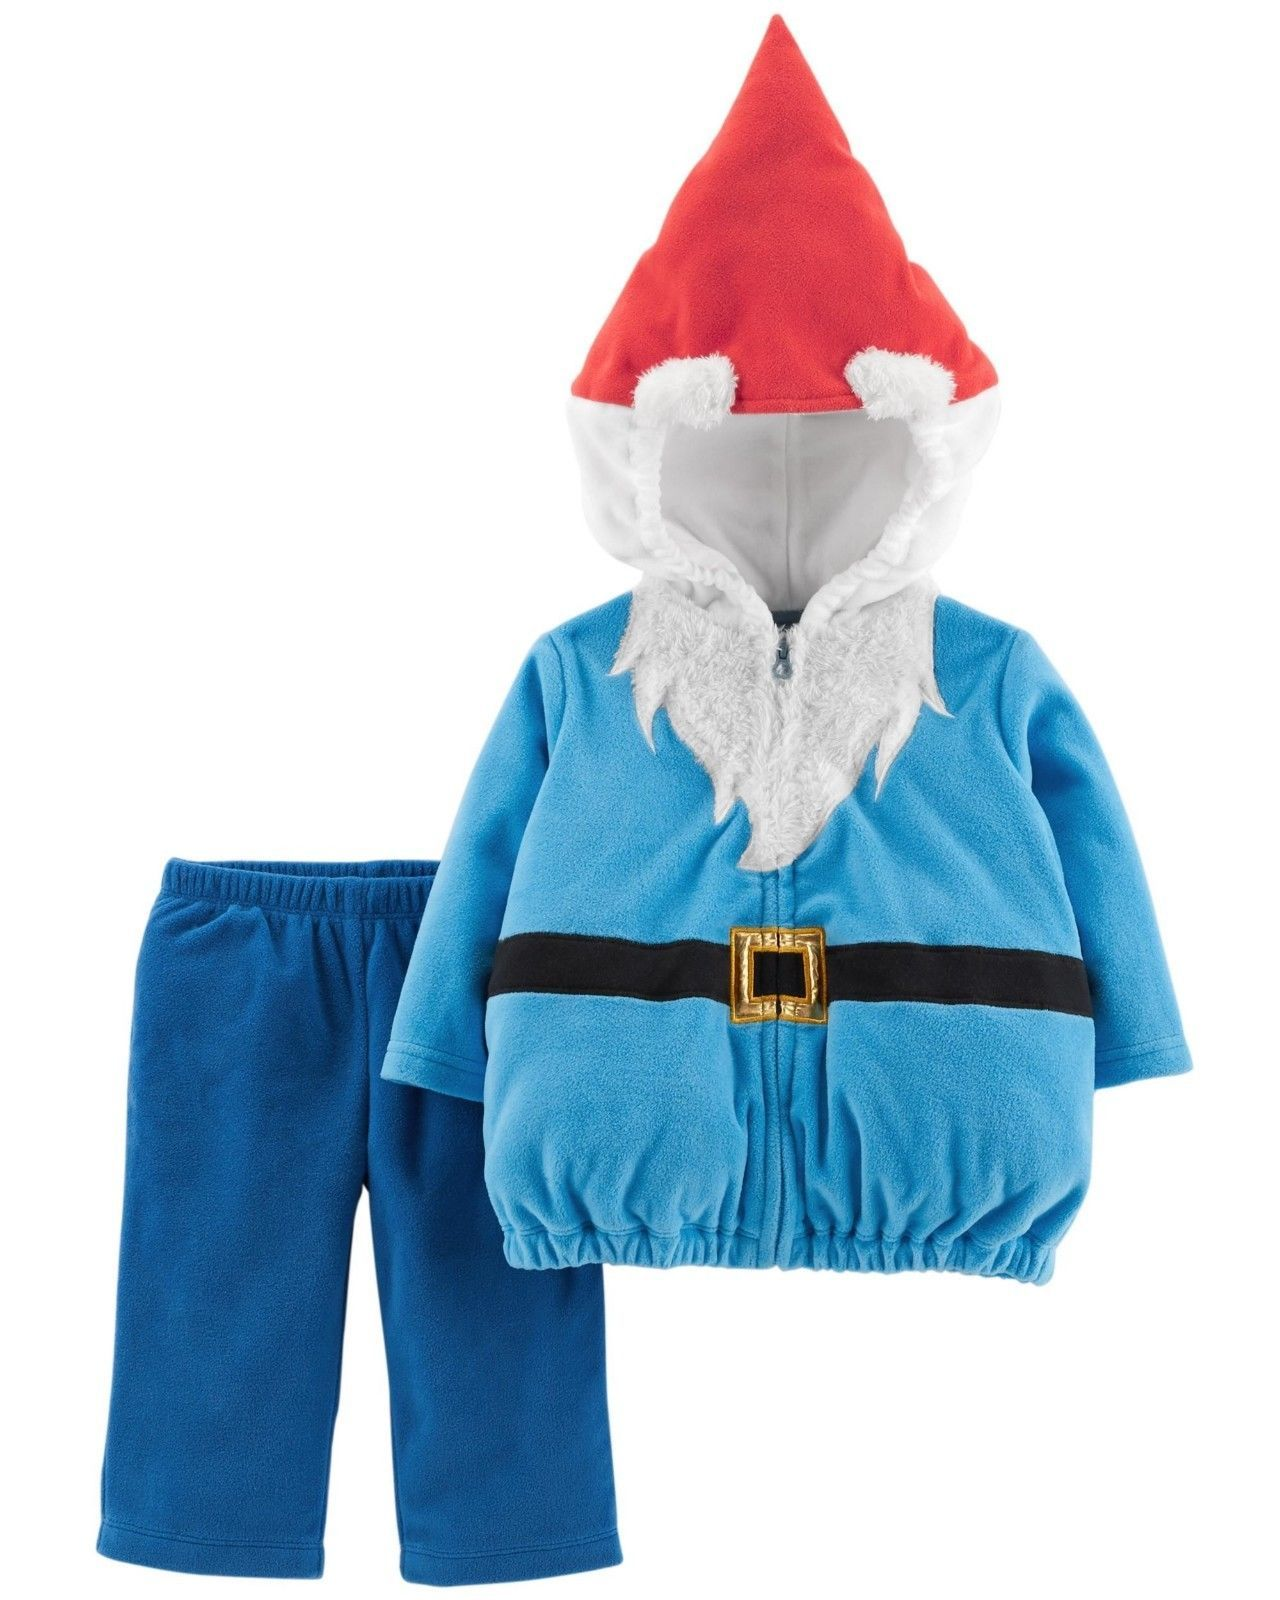 NEW NWT Boys or Girls Carter's Halloween Costume Gnome 3/6 or 6/9 Months